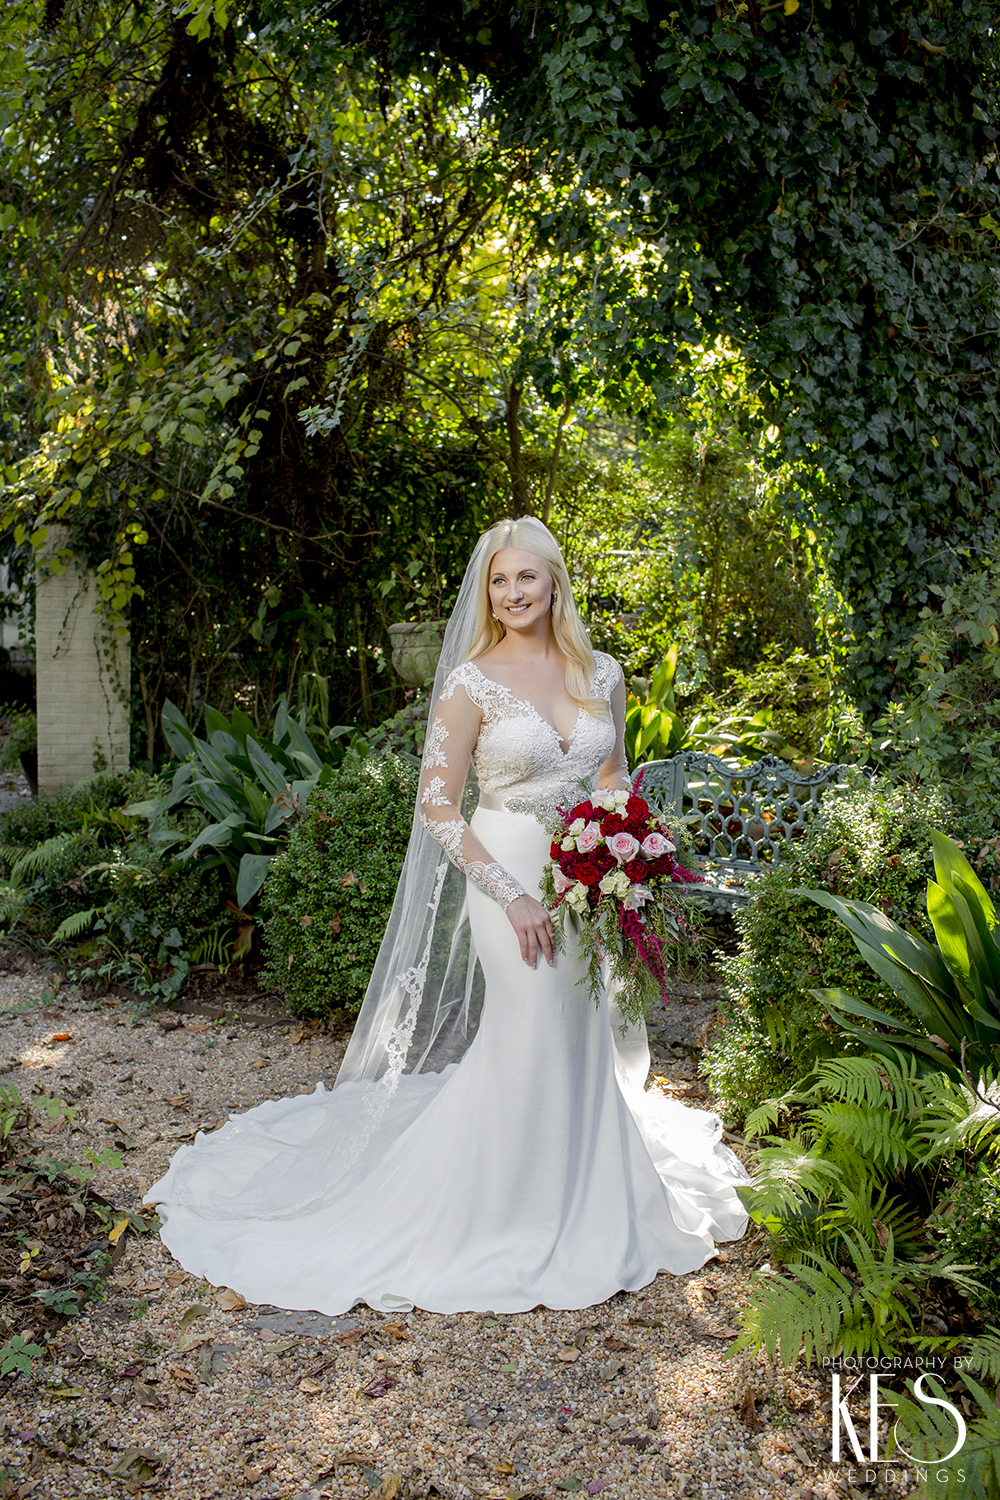 Marlsgate_Bridals_KES_Weddings_6.JPG